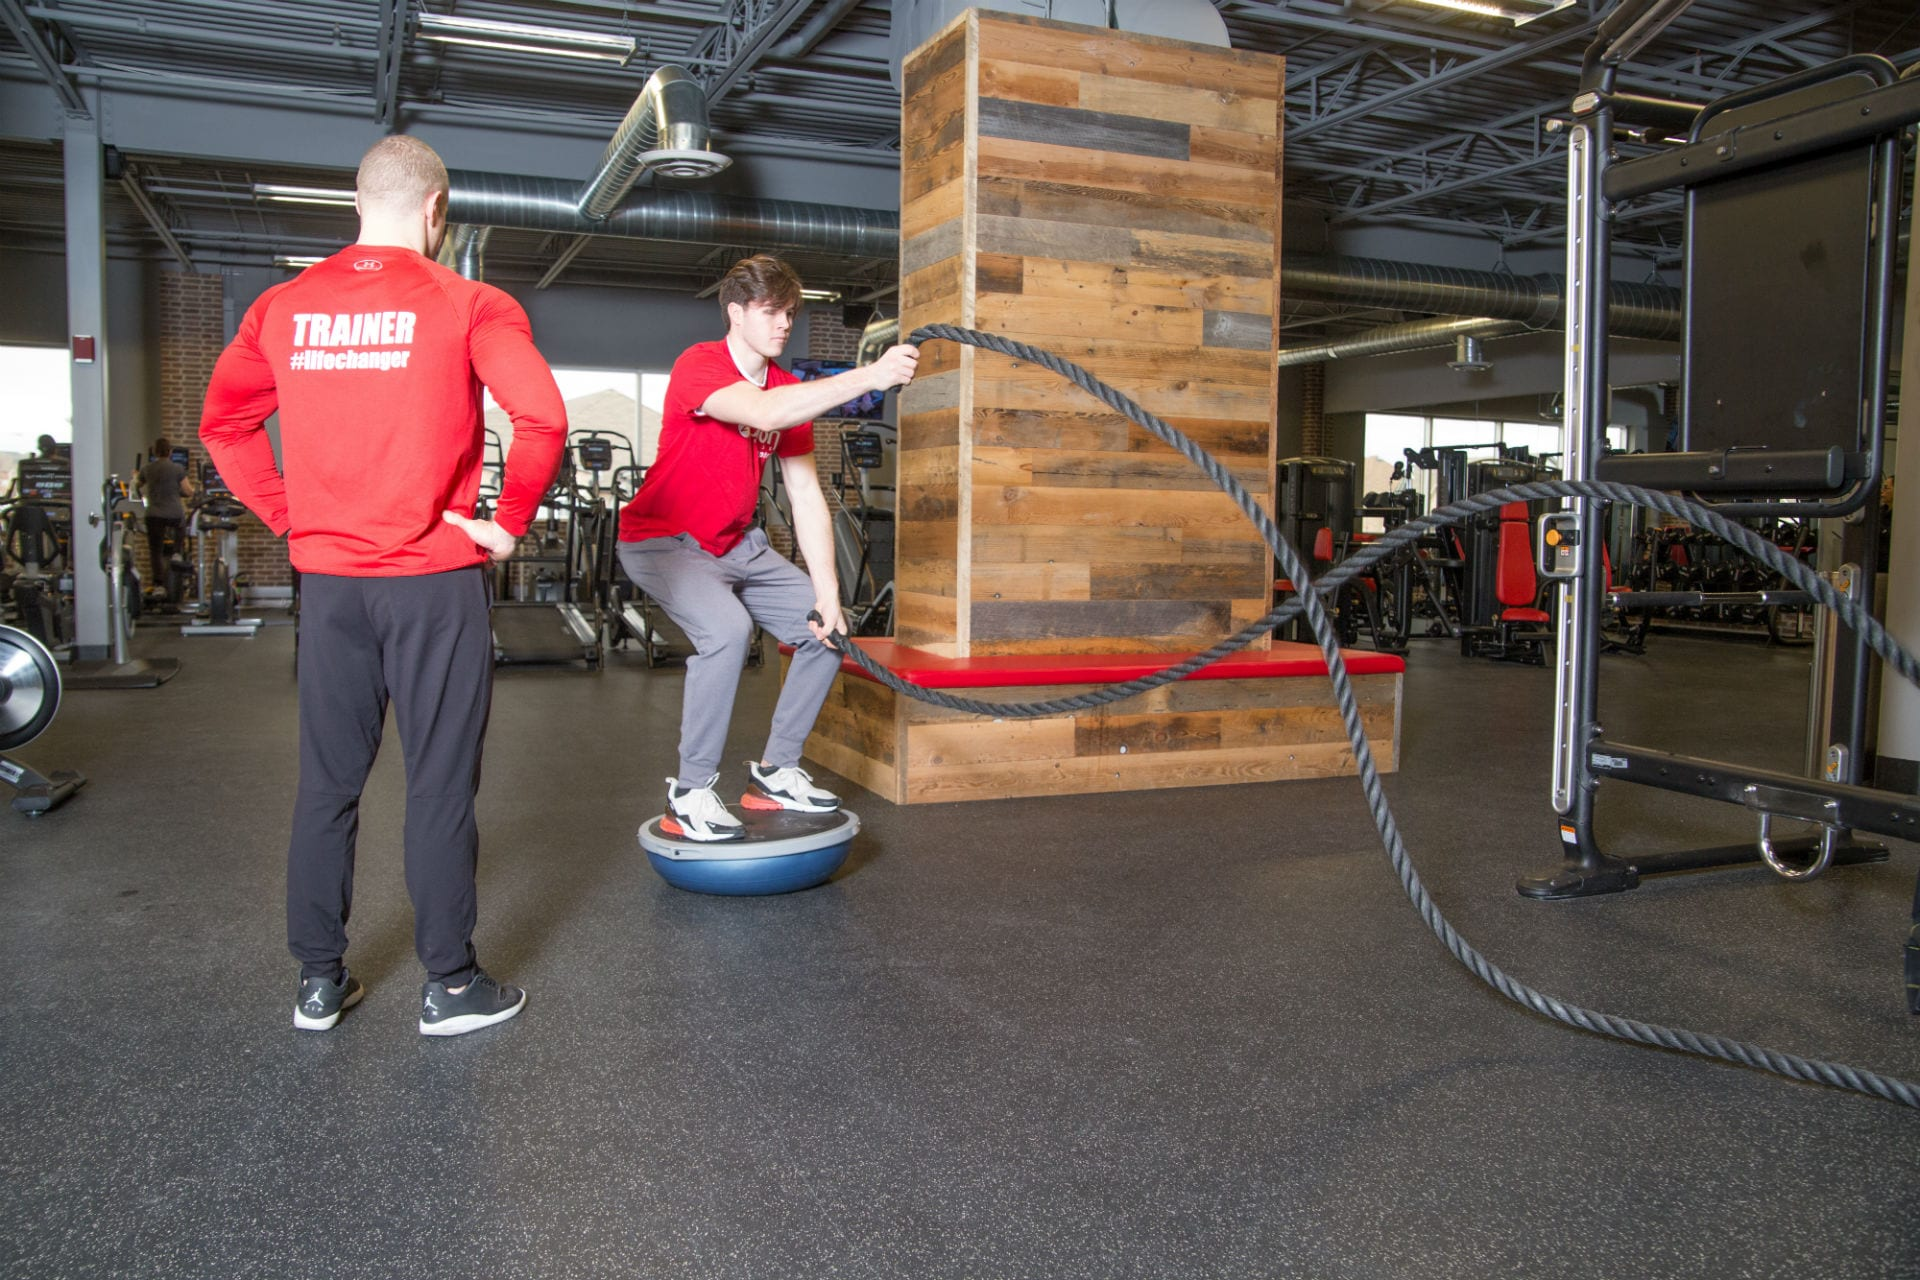 gym personal trainer coaching gym member using functional ropes